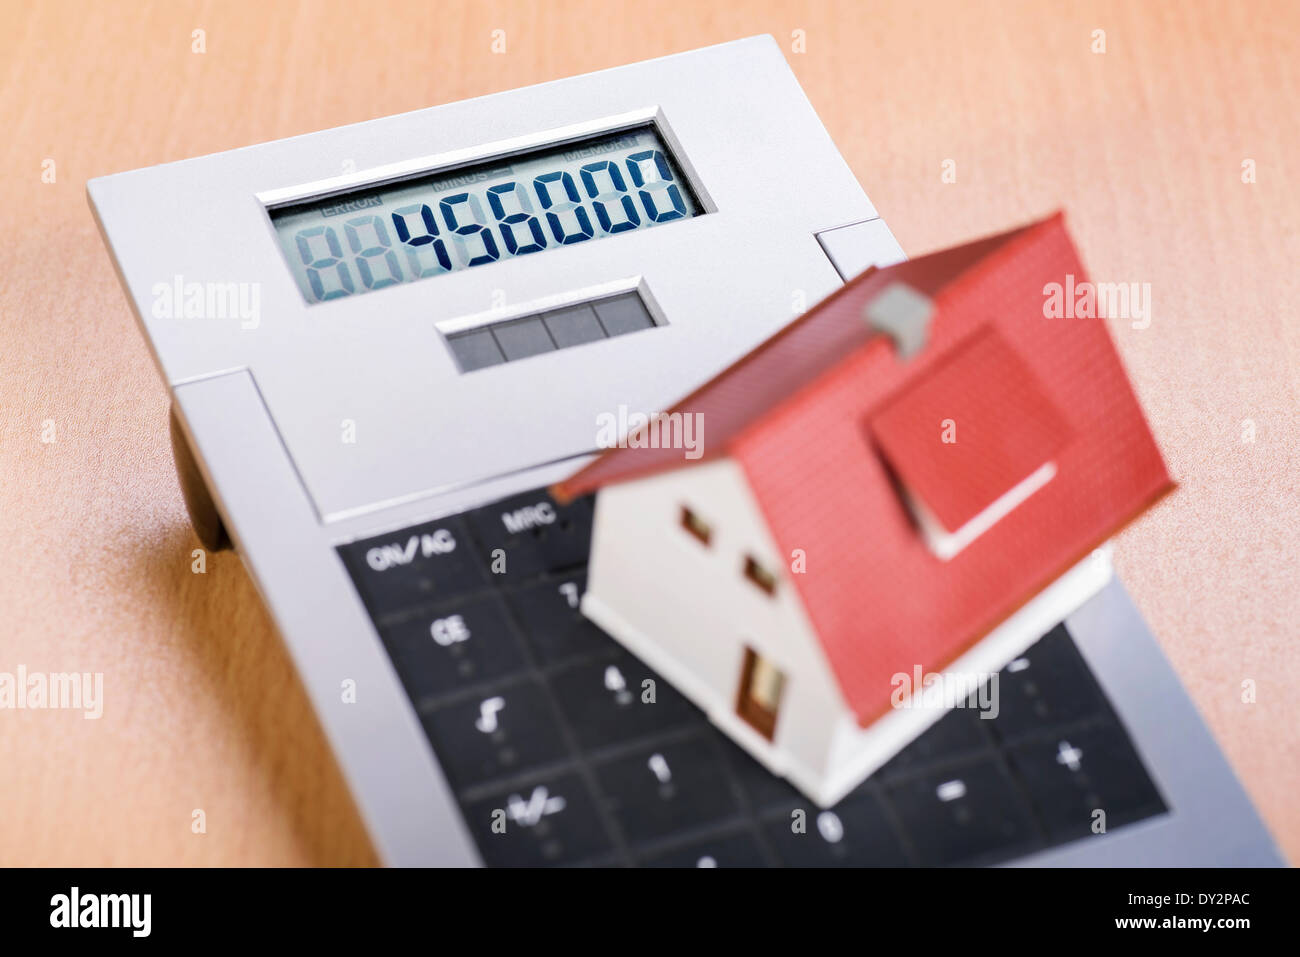 House stands on the keyboard of a calculator. March 2014 Stock Photo